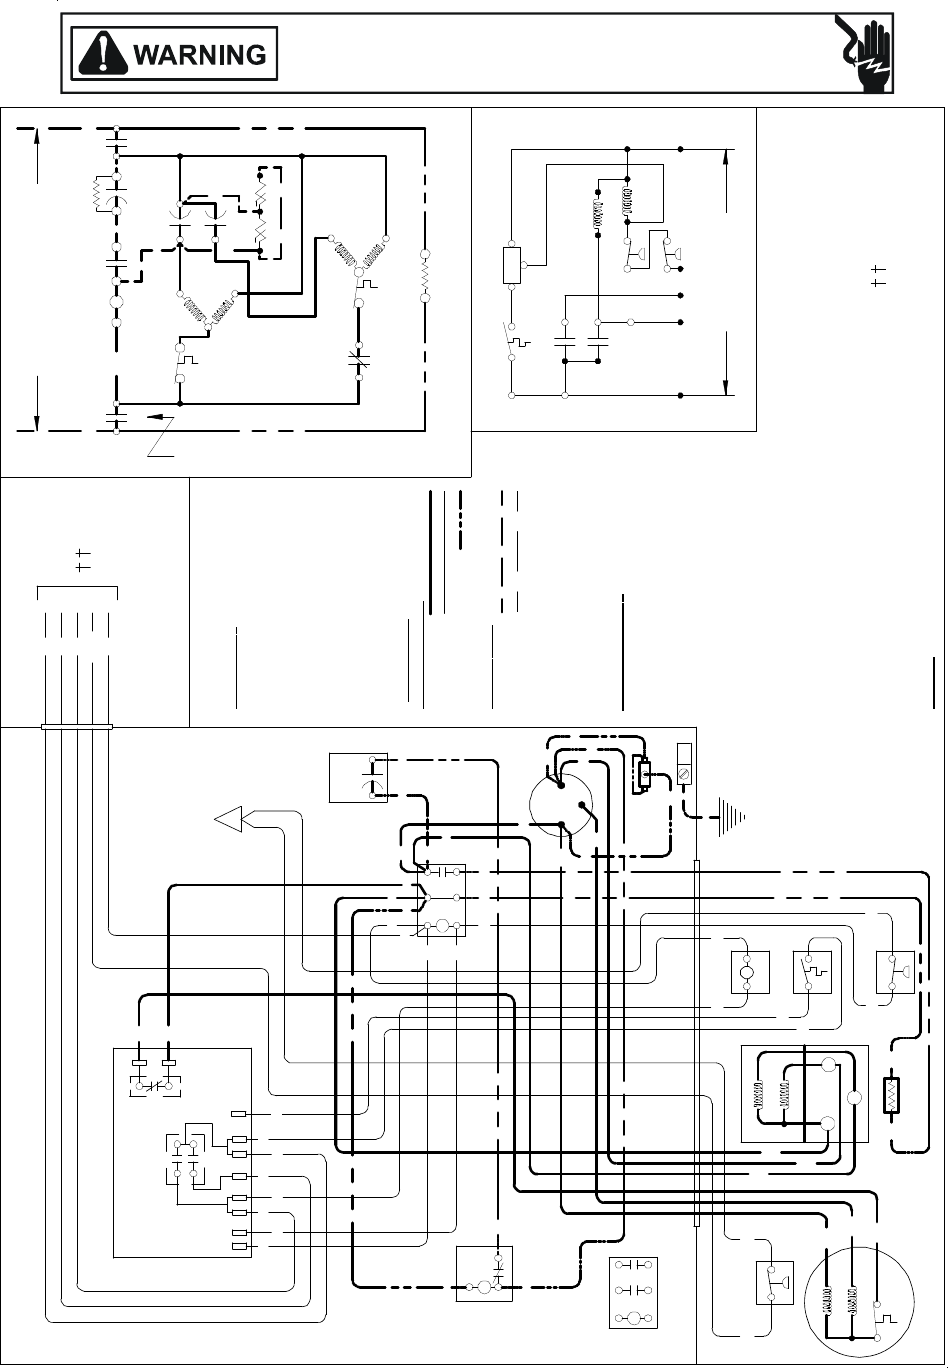 rheem thermostat wiring diagram with 13 Seer Goodman Heat Pump Wiring Diagram on Programmable Thermostats moreover Beckett Oil Burner Ignitor Wiring Diagram as well 00001 as well Nordyne Air Conditioner Wiring Diagram also Rheem Hvac Wiring Diagrams.